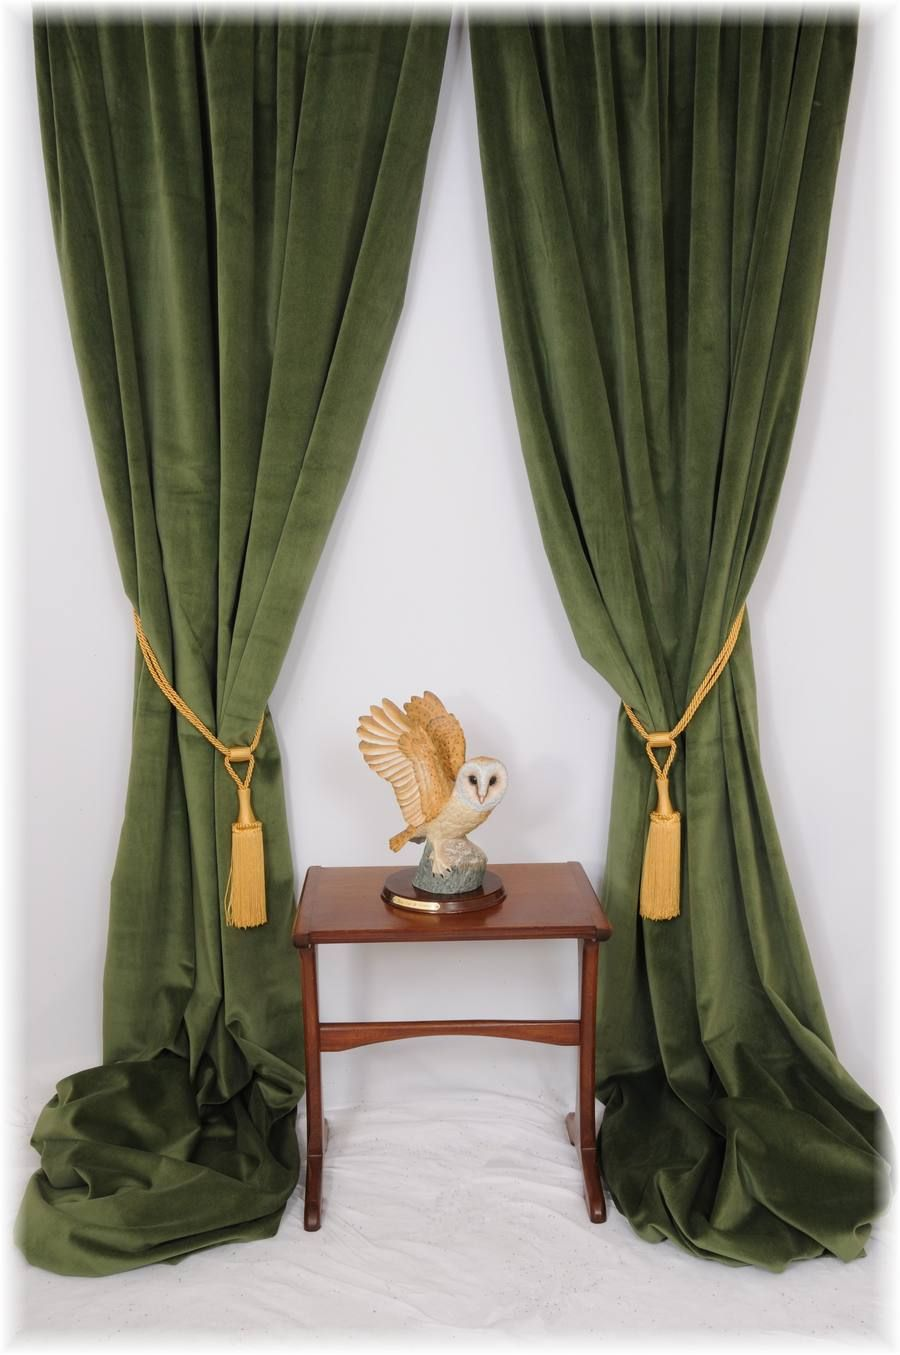 Details about superb forest spruce green velvet curtains bespoke service all sizes mtm